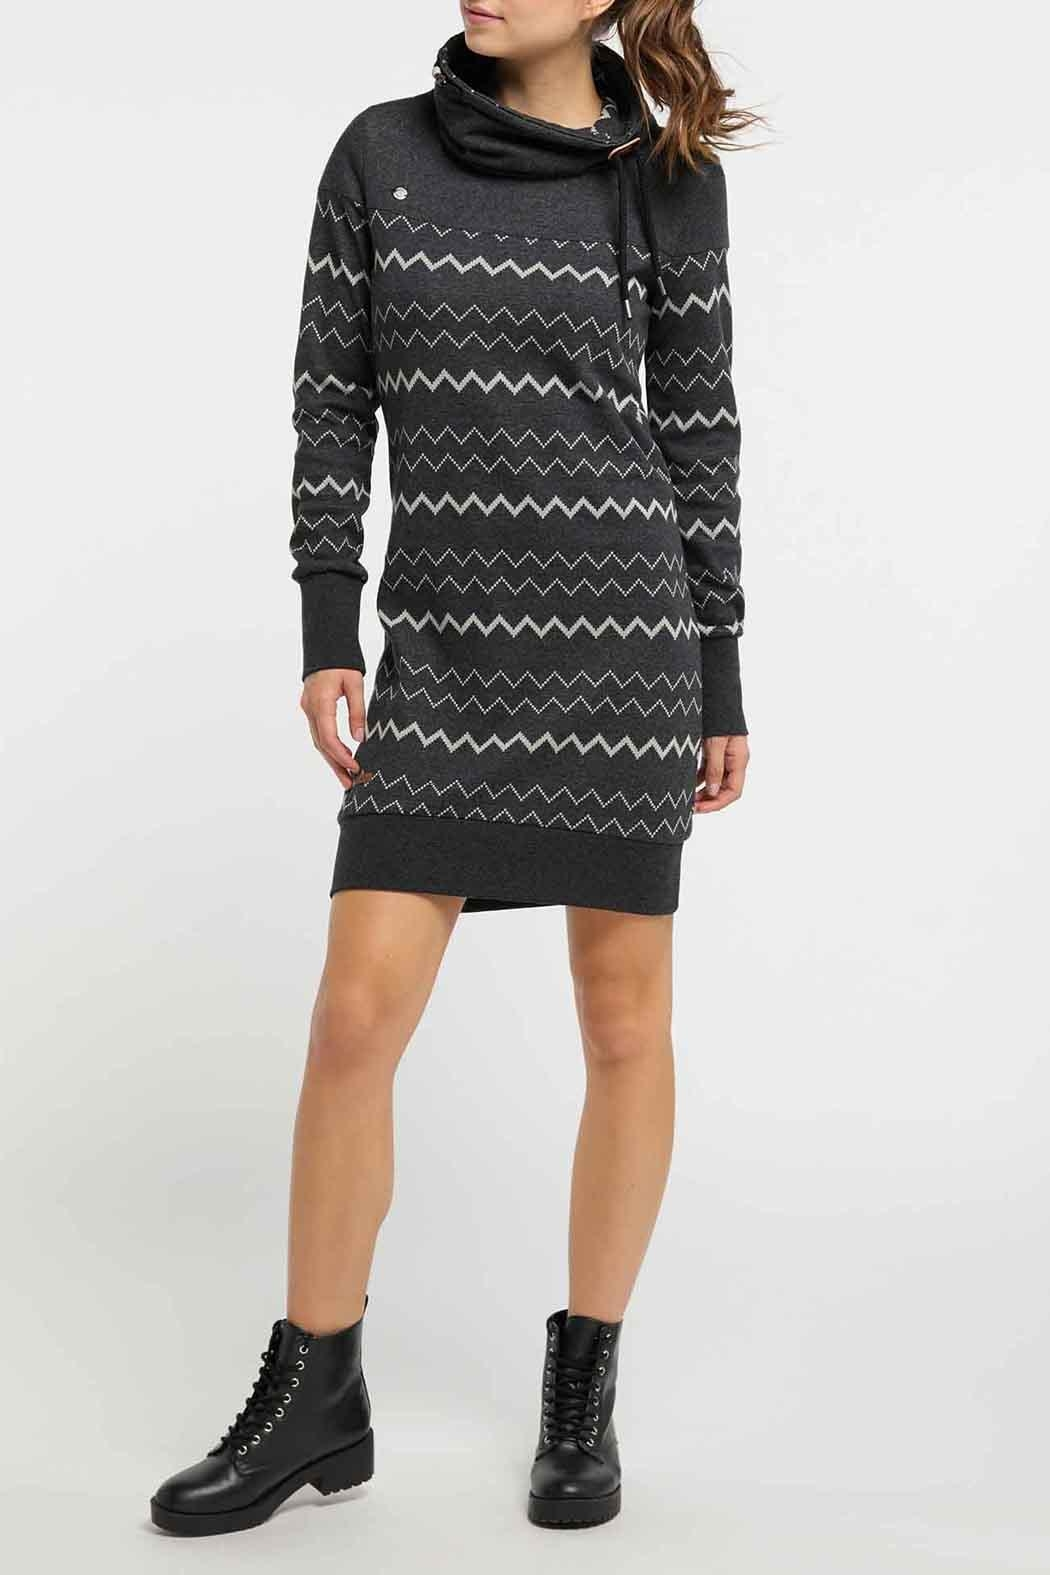 Ragwear Chloe Sweater Dress - Side Cropped Image